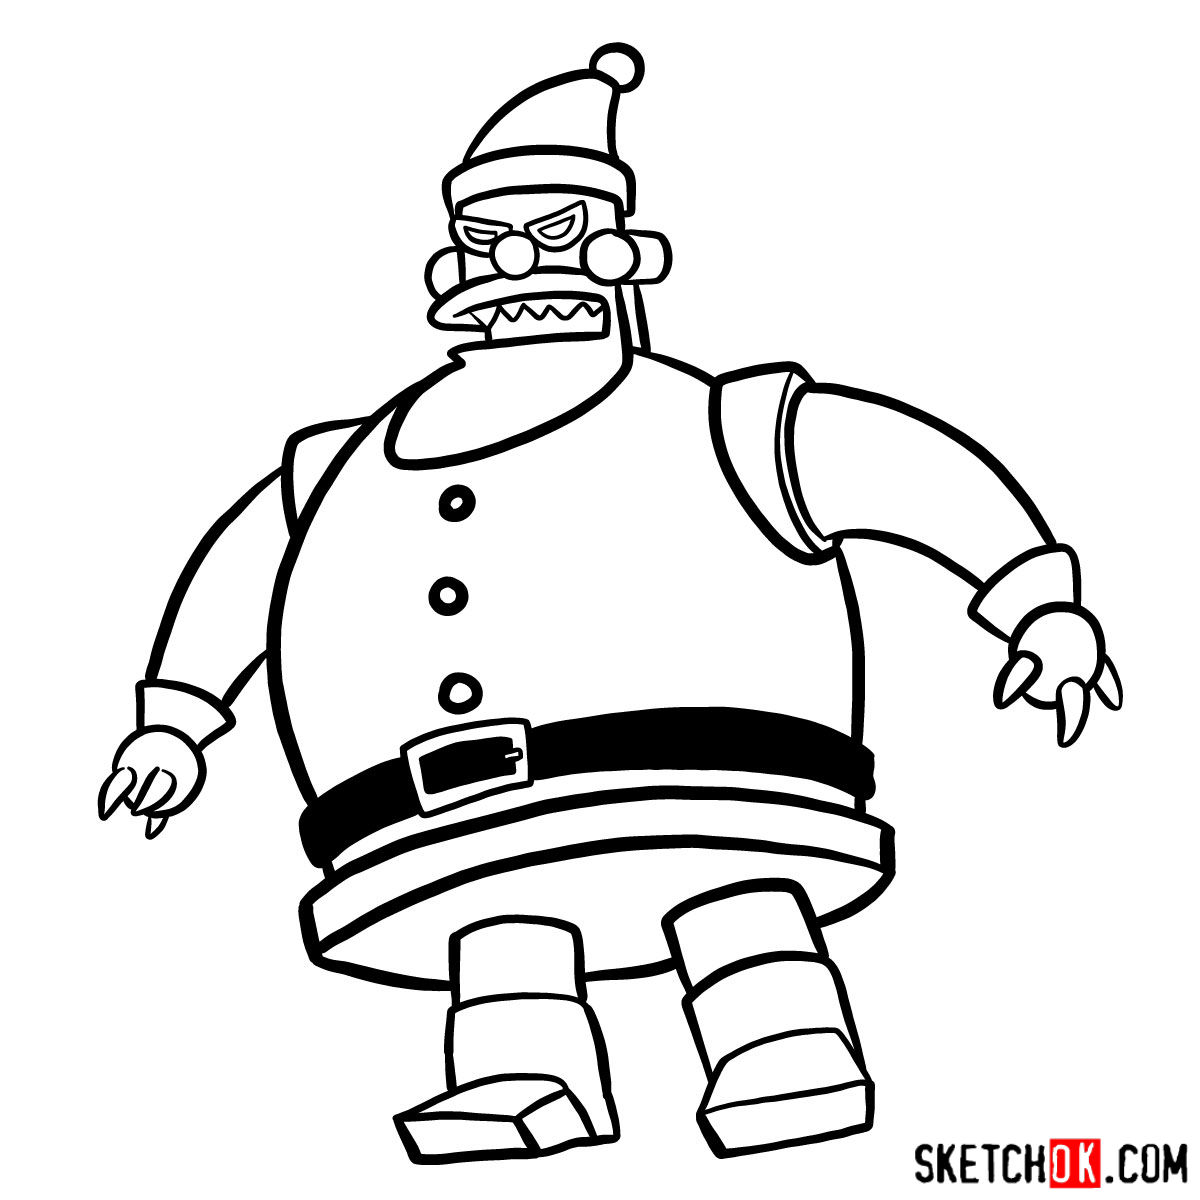 How to draw Robot Santa Claus - step 11